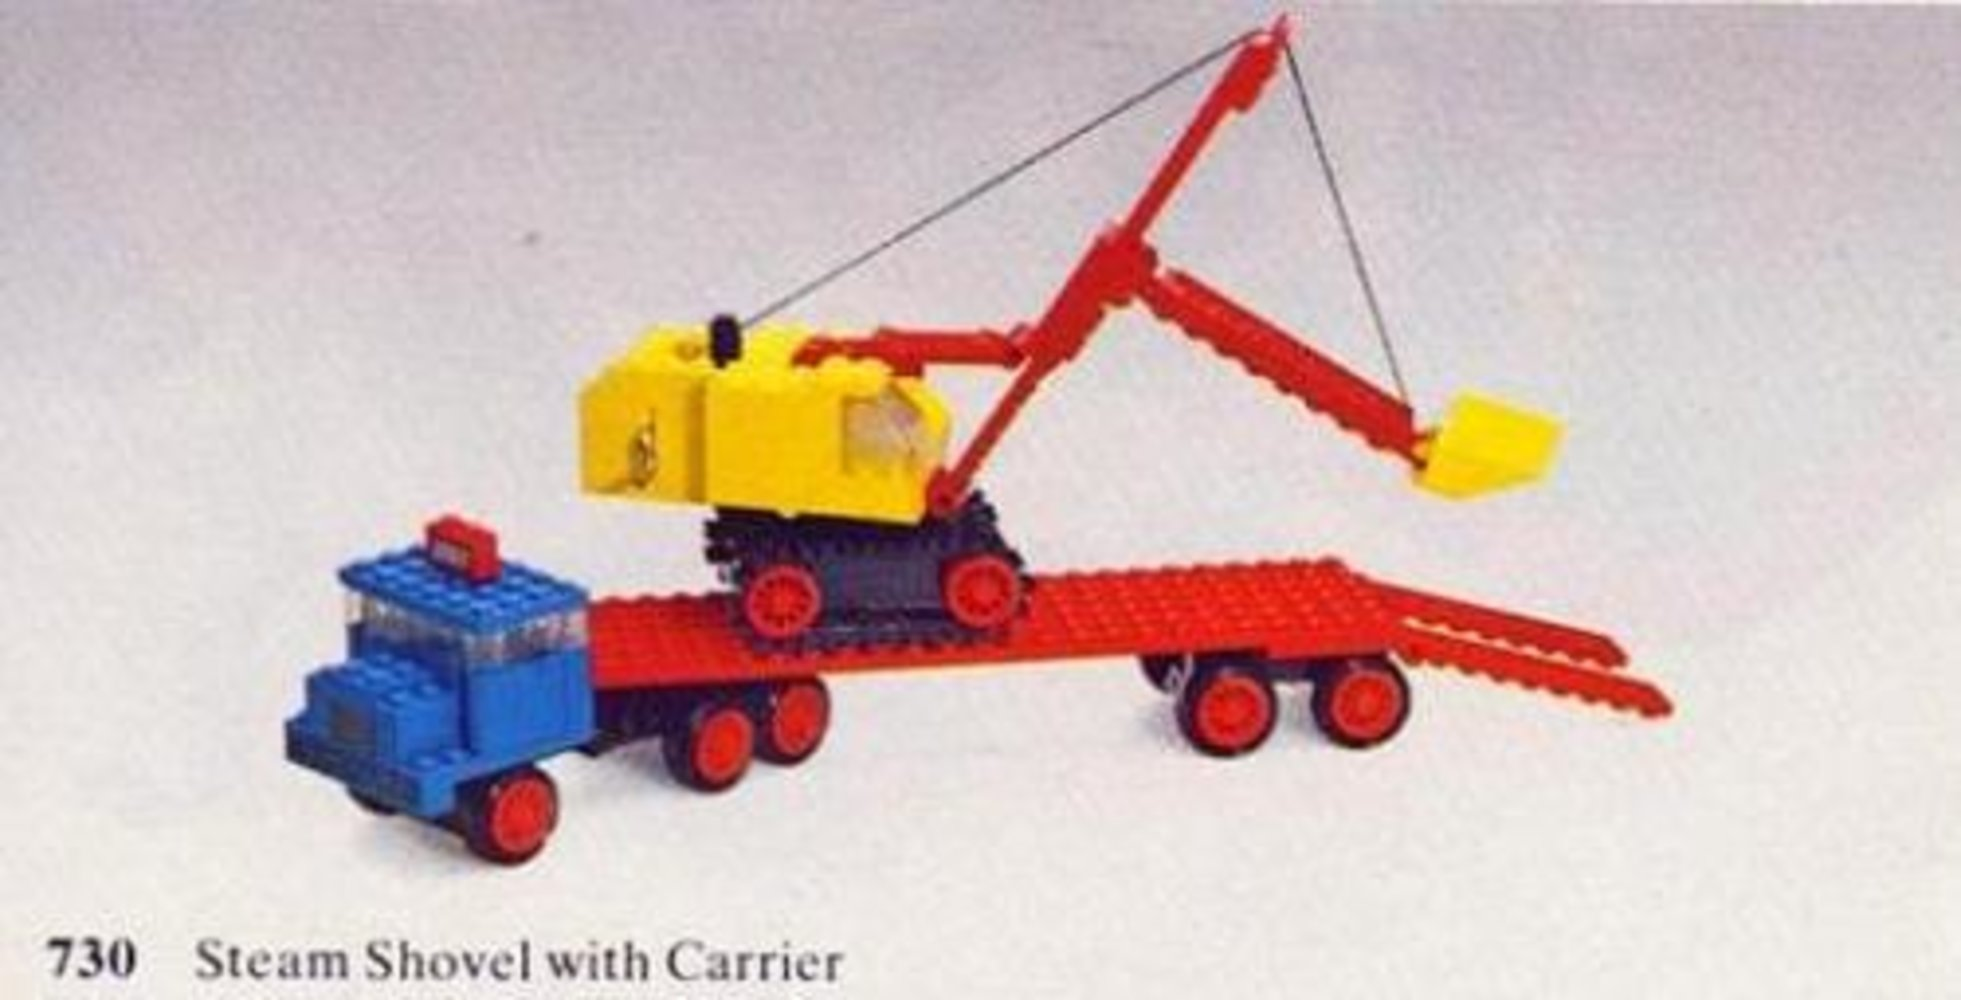 Steam Shovel with Carrier